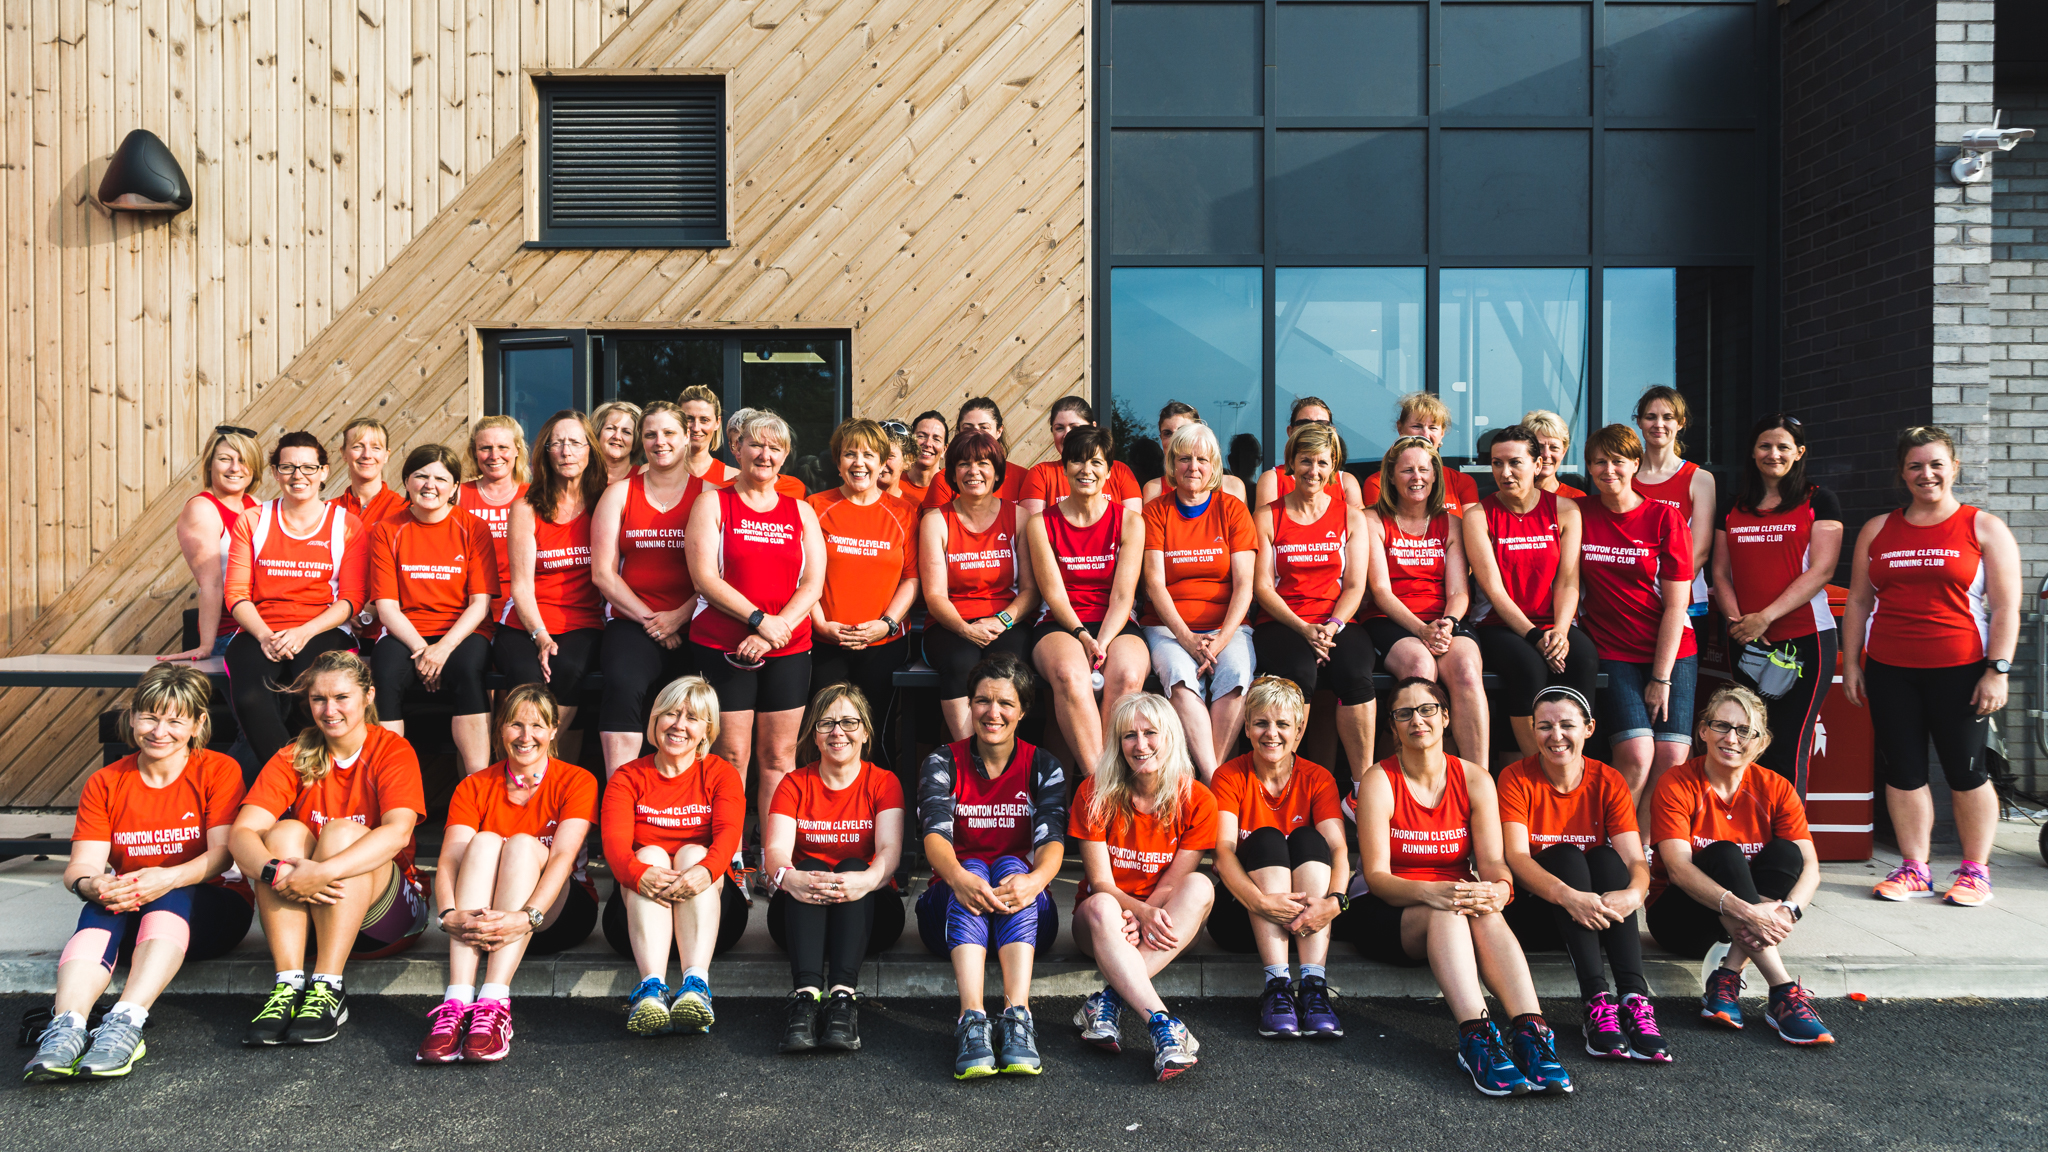 16-06-07 Team photo for Cleveleys and Thornton running club-33.jpg